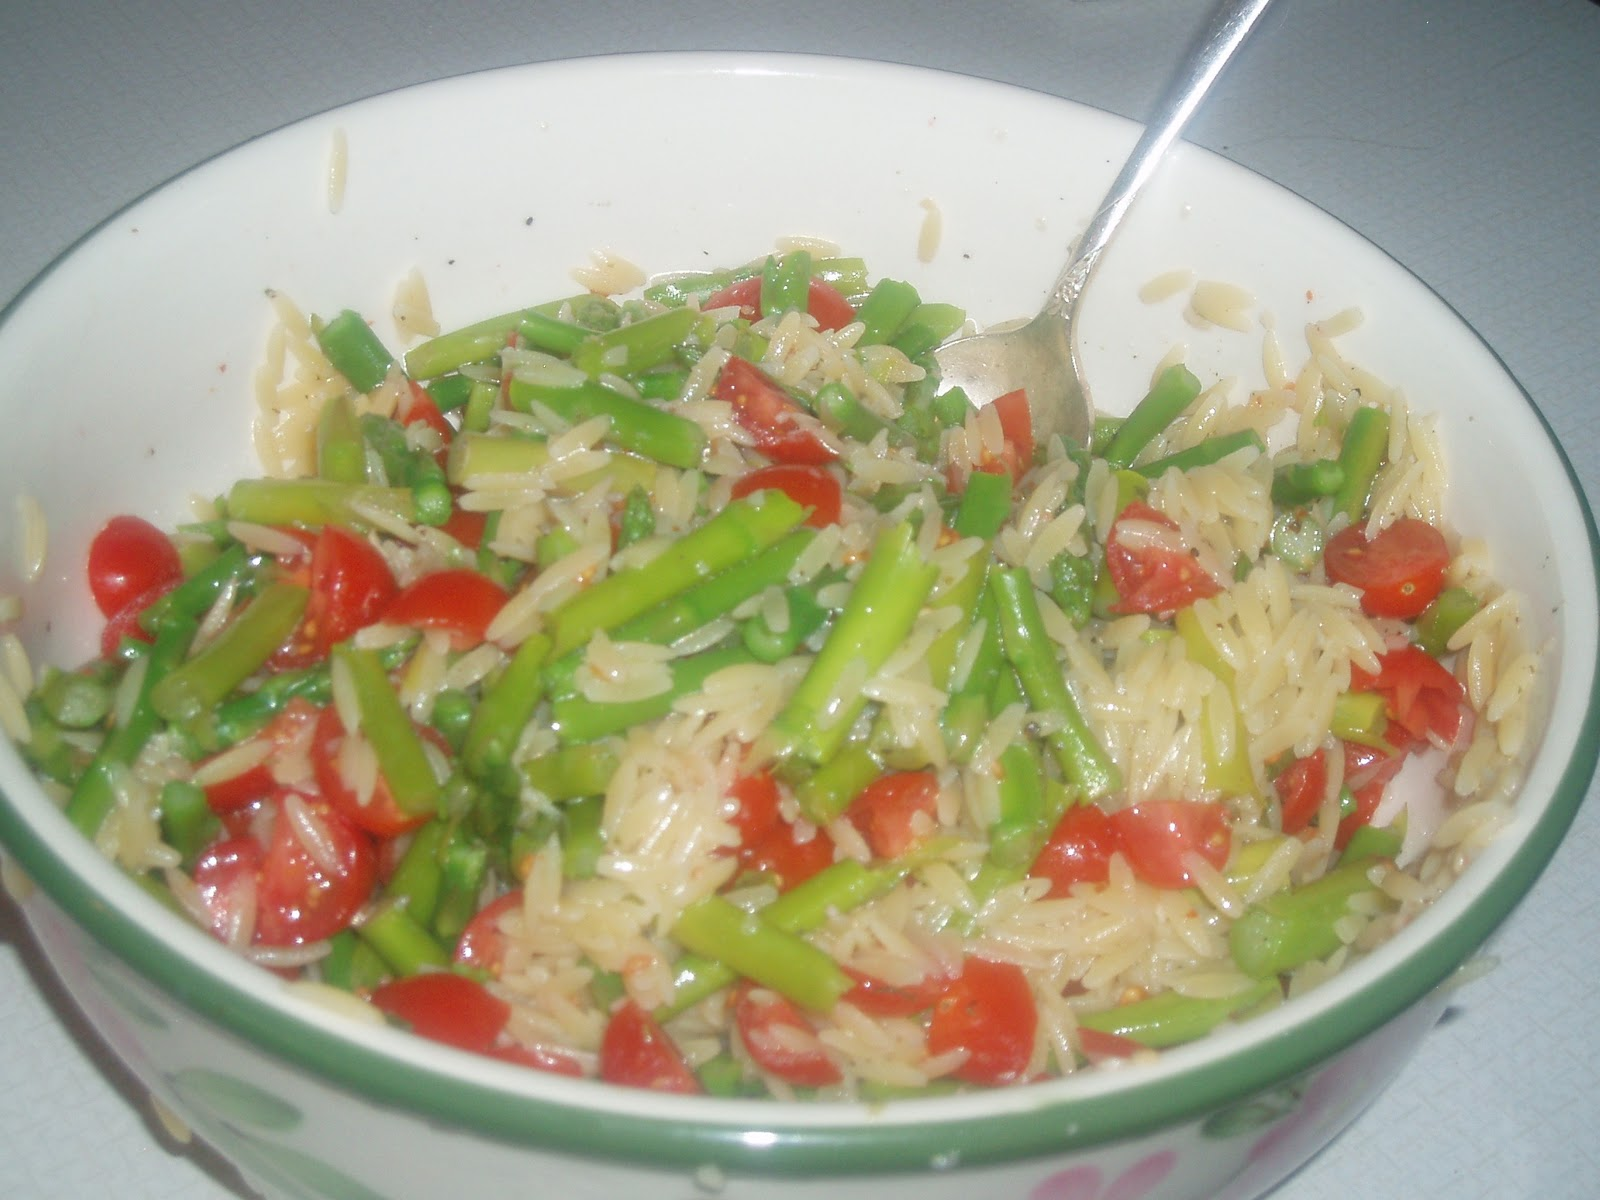 Pastimes Quilt Design: Lemon Orzo Salad with Asparagus and Tomatoes